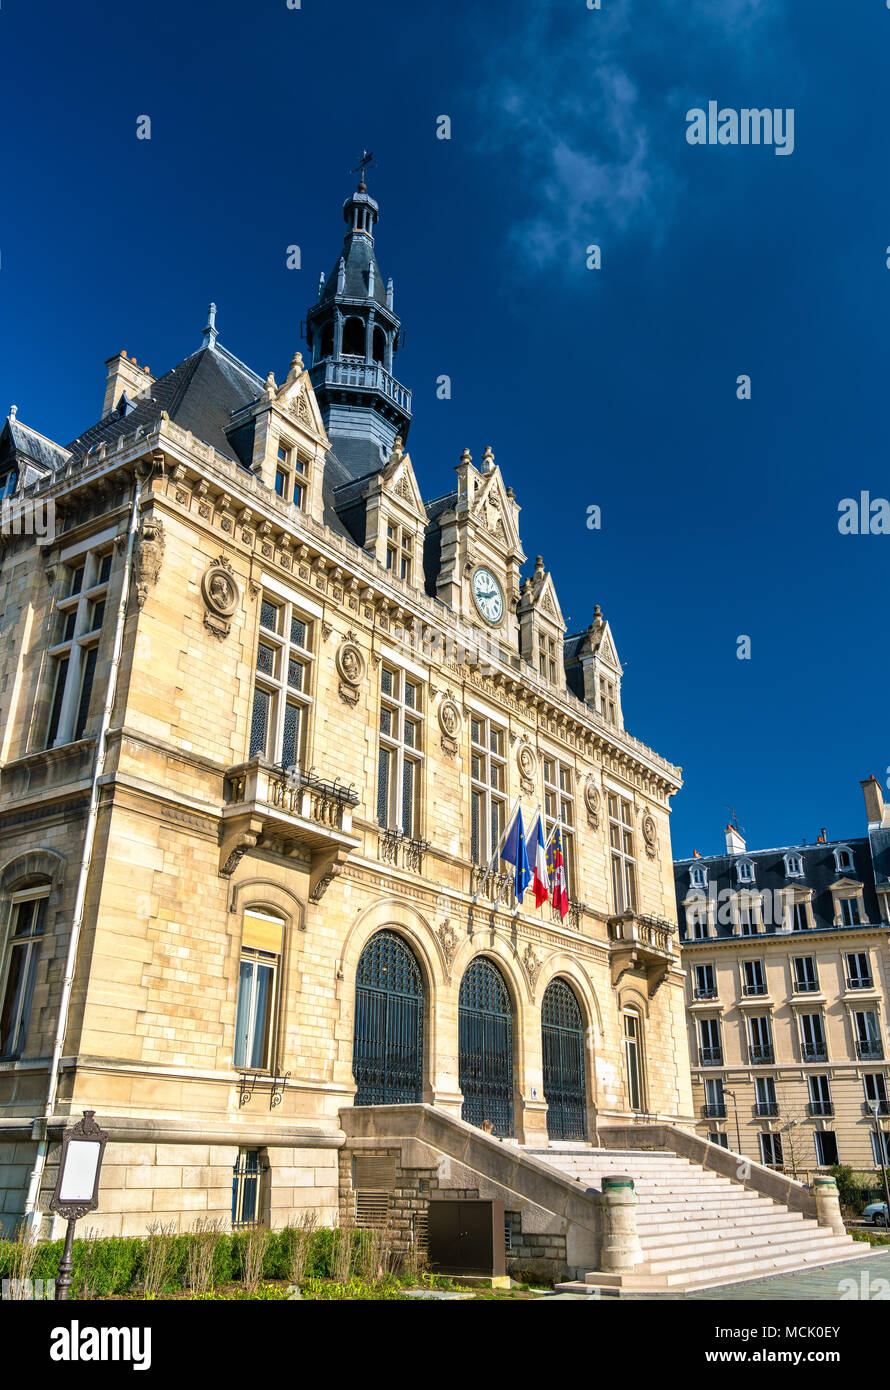 Mairie de Vincennes, the town hall of Vincennes near Paris, France - Stock Image